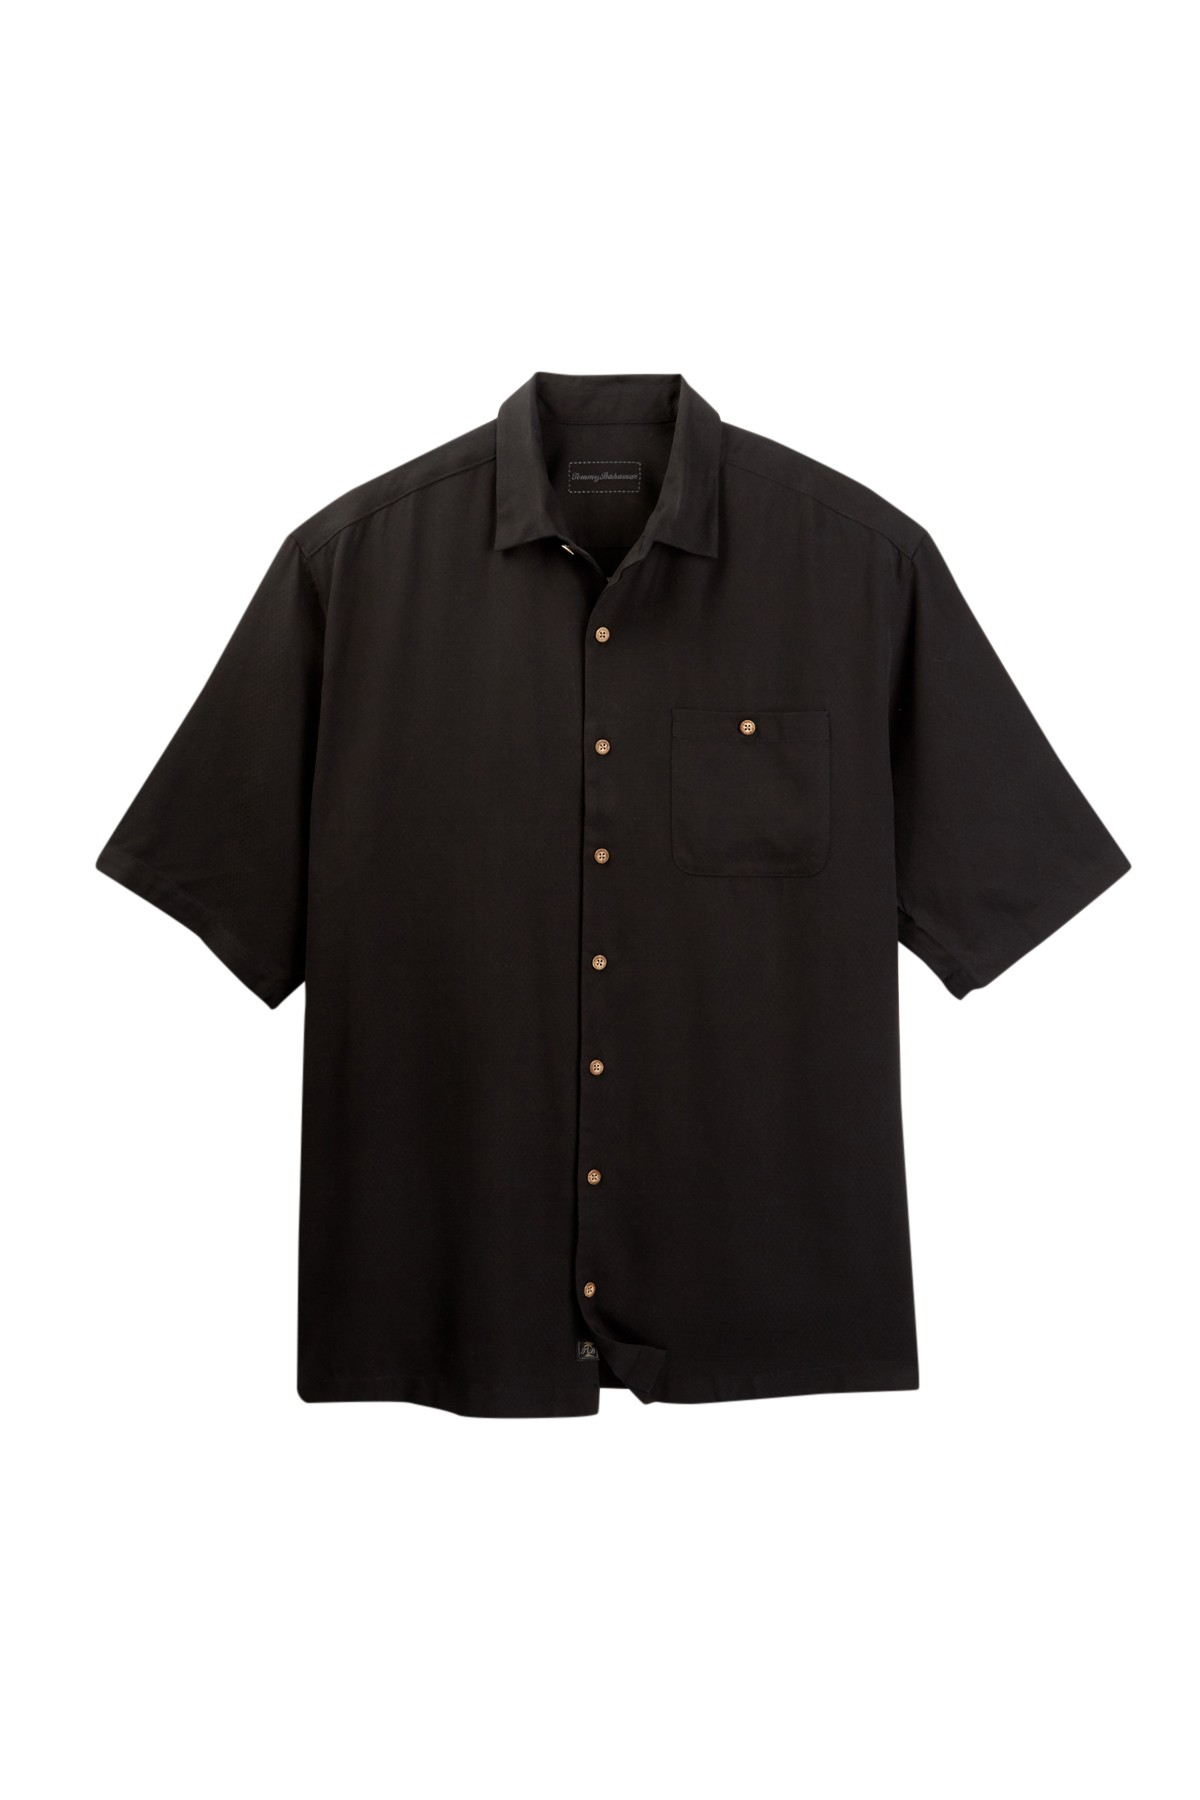 Tommy bahama burn cigar lounge embroidered silk camp shirt for Tommy bahama embroidered silk camp shirt